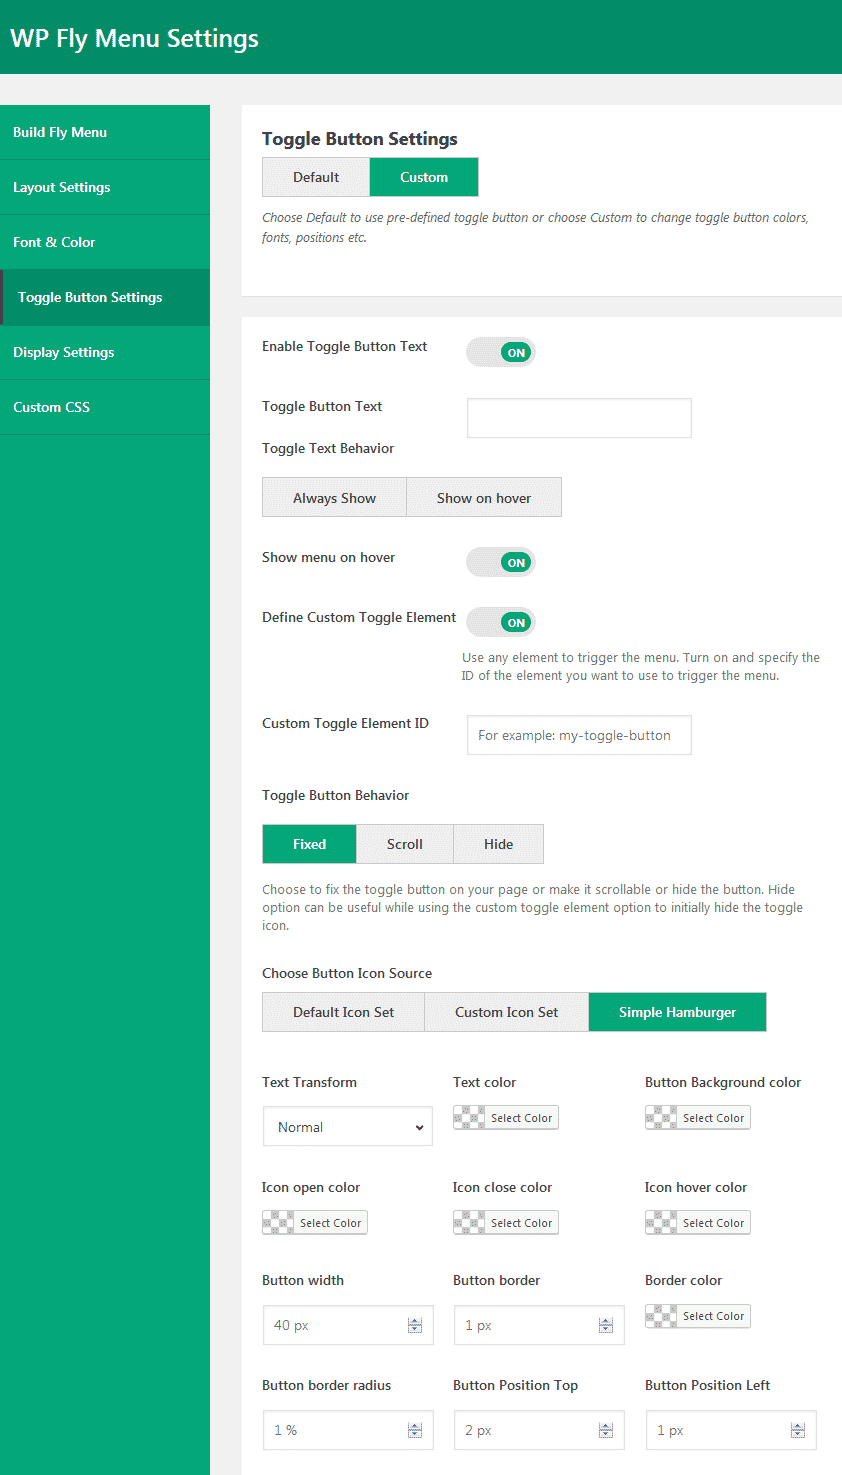 WP Fly Menu: Toggle Button Settings